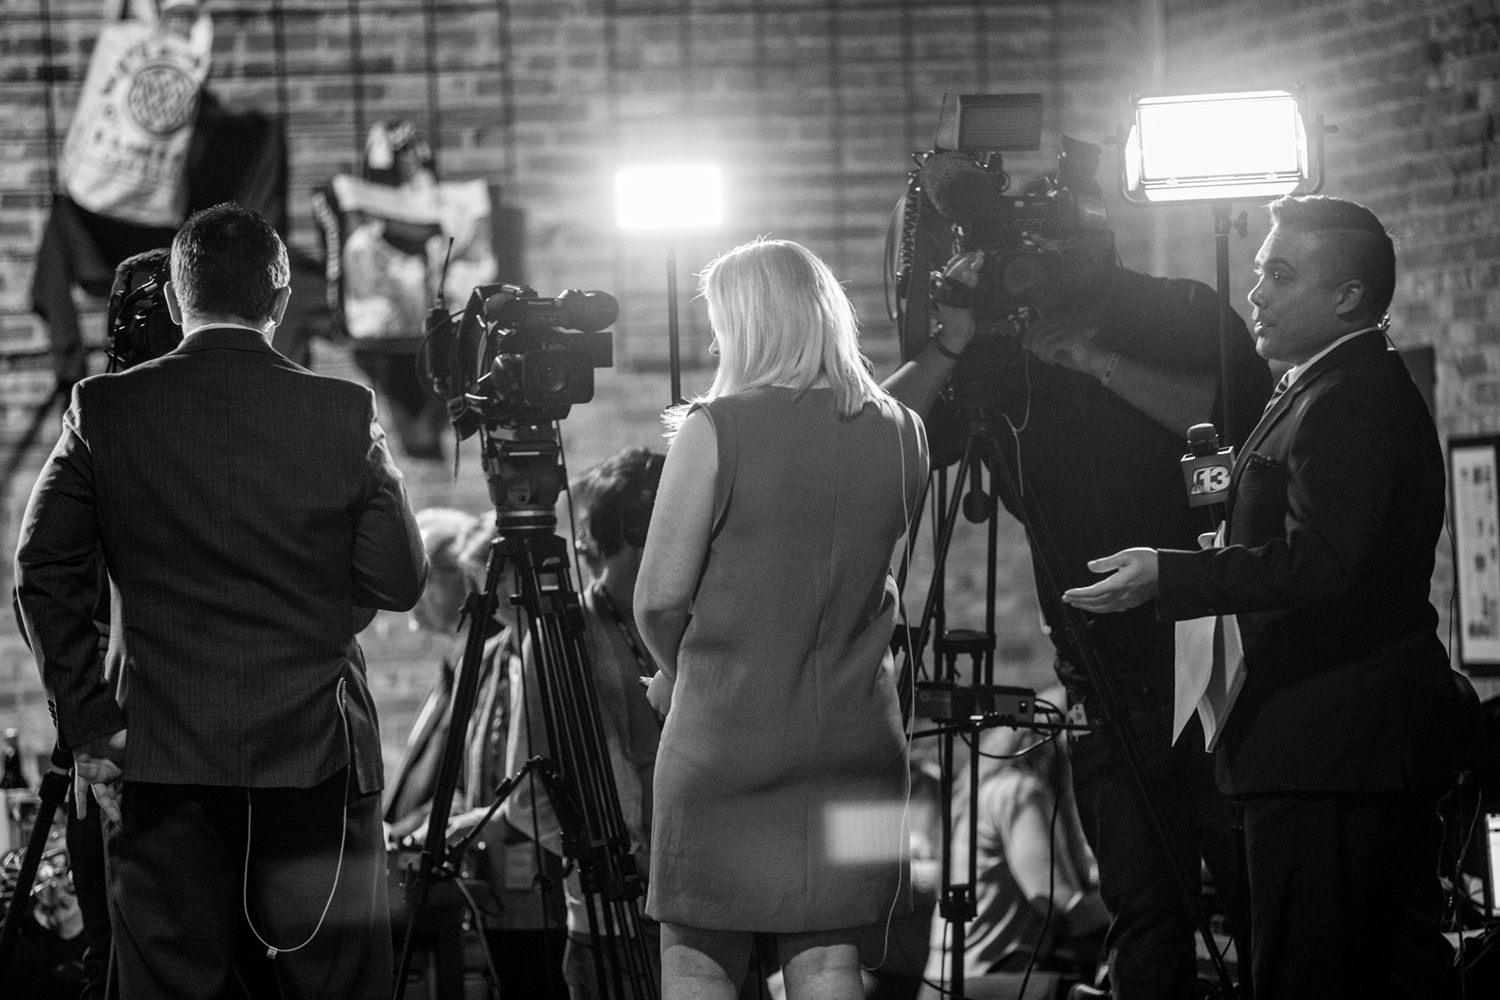 Televison reporters prepare to go live as polls close at 9 p.m. during a watch party for Democratic candidate for Iowa's first congressional district Abby Finkenauer at 7 Hills Brewing Company in Dubuque Iowa on Tuesday Nov. 6, 2018.